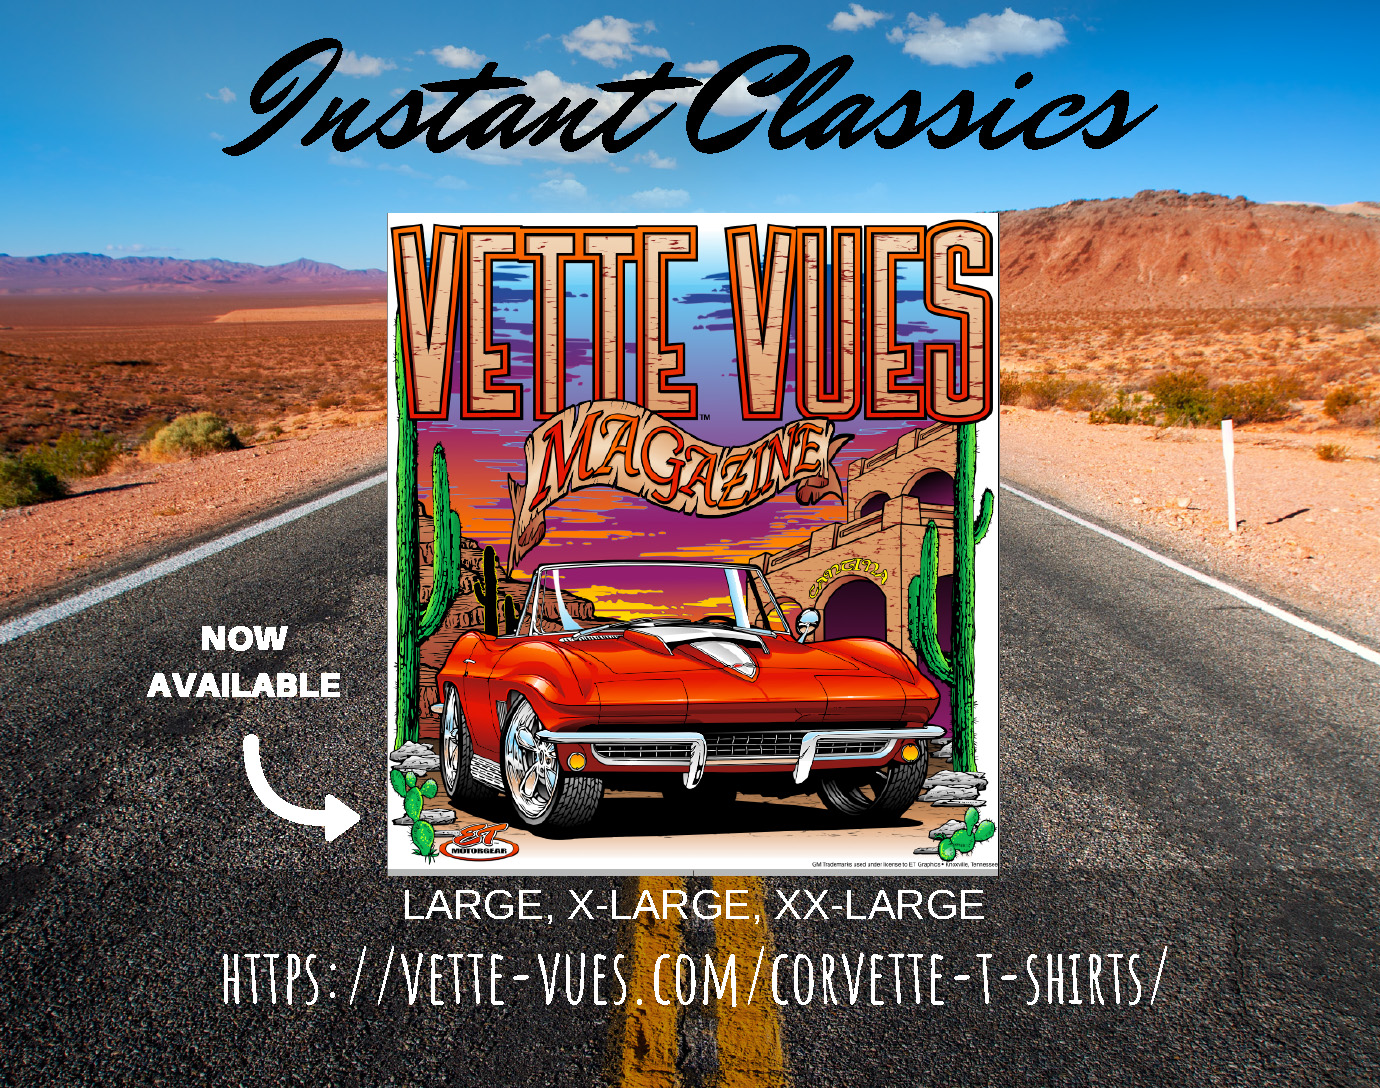 Vette Vues Magazine's Corvette T-shirt features a Red Mid-Year C2 Corvette on a 100% pre-shrunk cotton, highly detailed silk screen artwork on the tee.